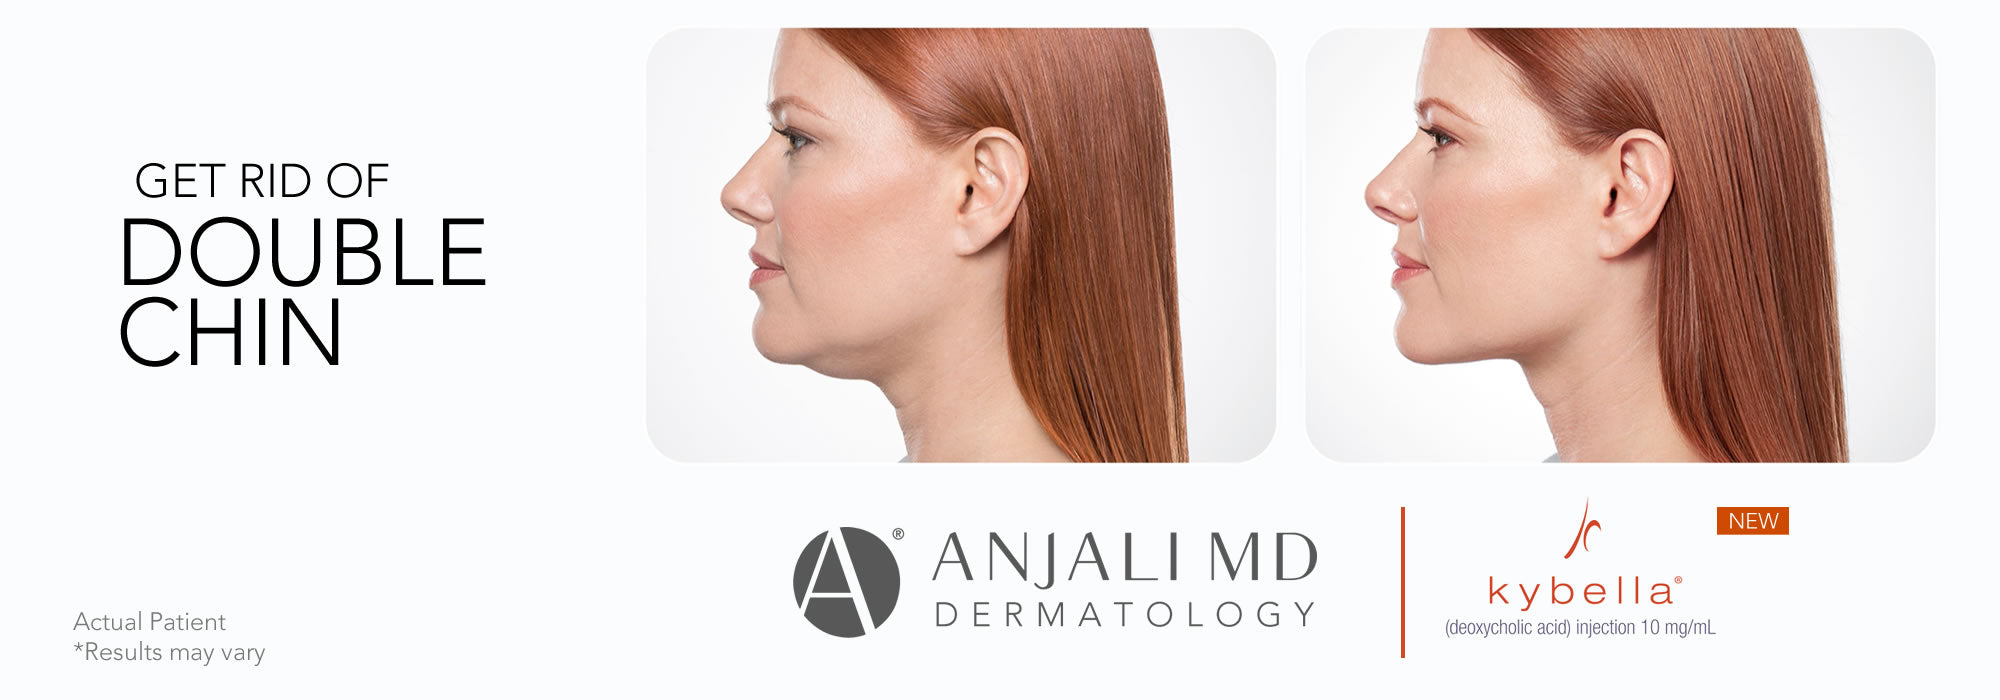 Eliminate Neck Fat 'Double Chin' Kybella Injection - Anjali MD Dermatology